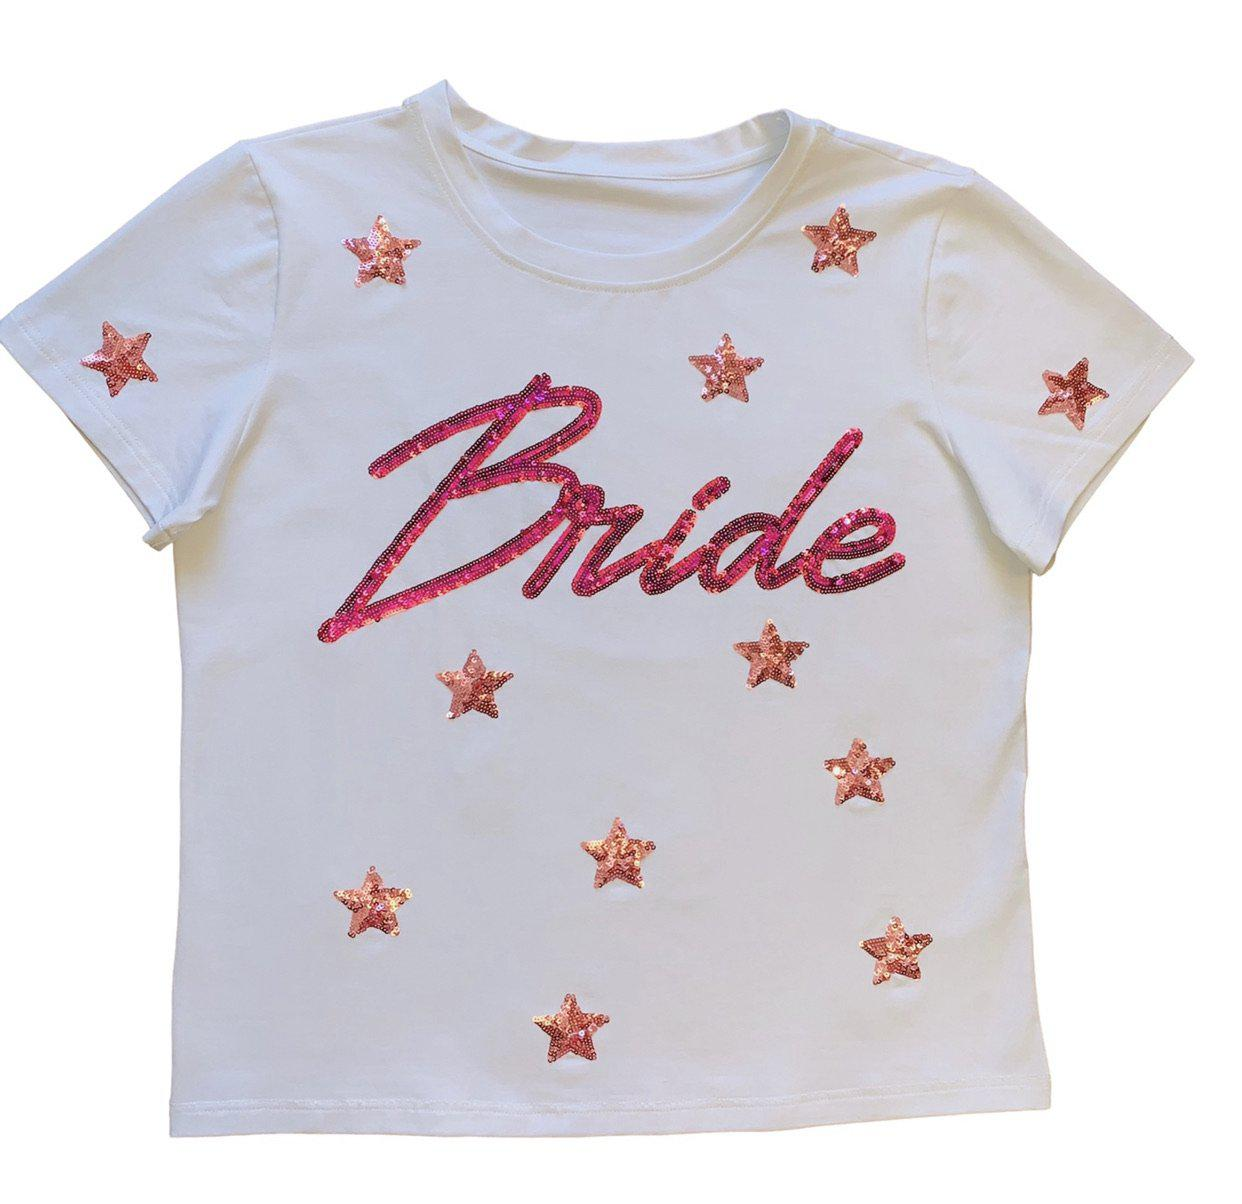 Starry Eyed Bride Tee